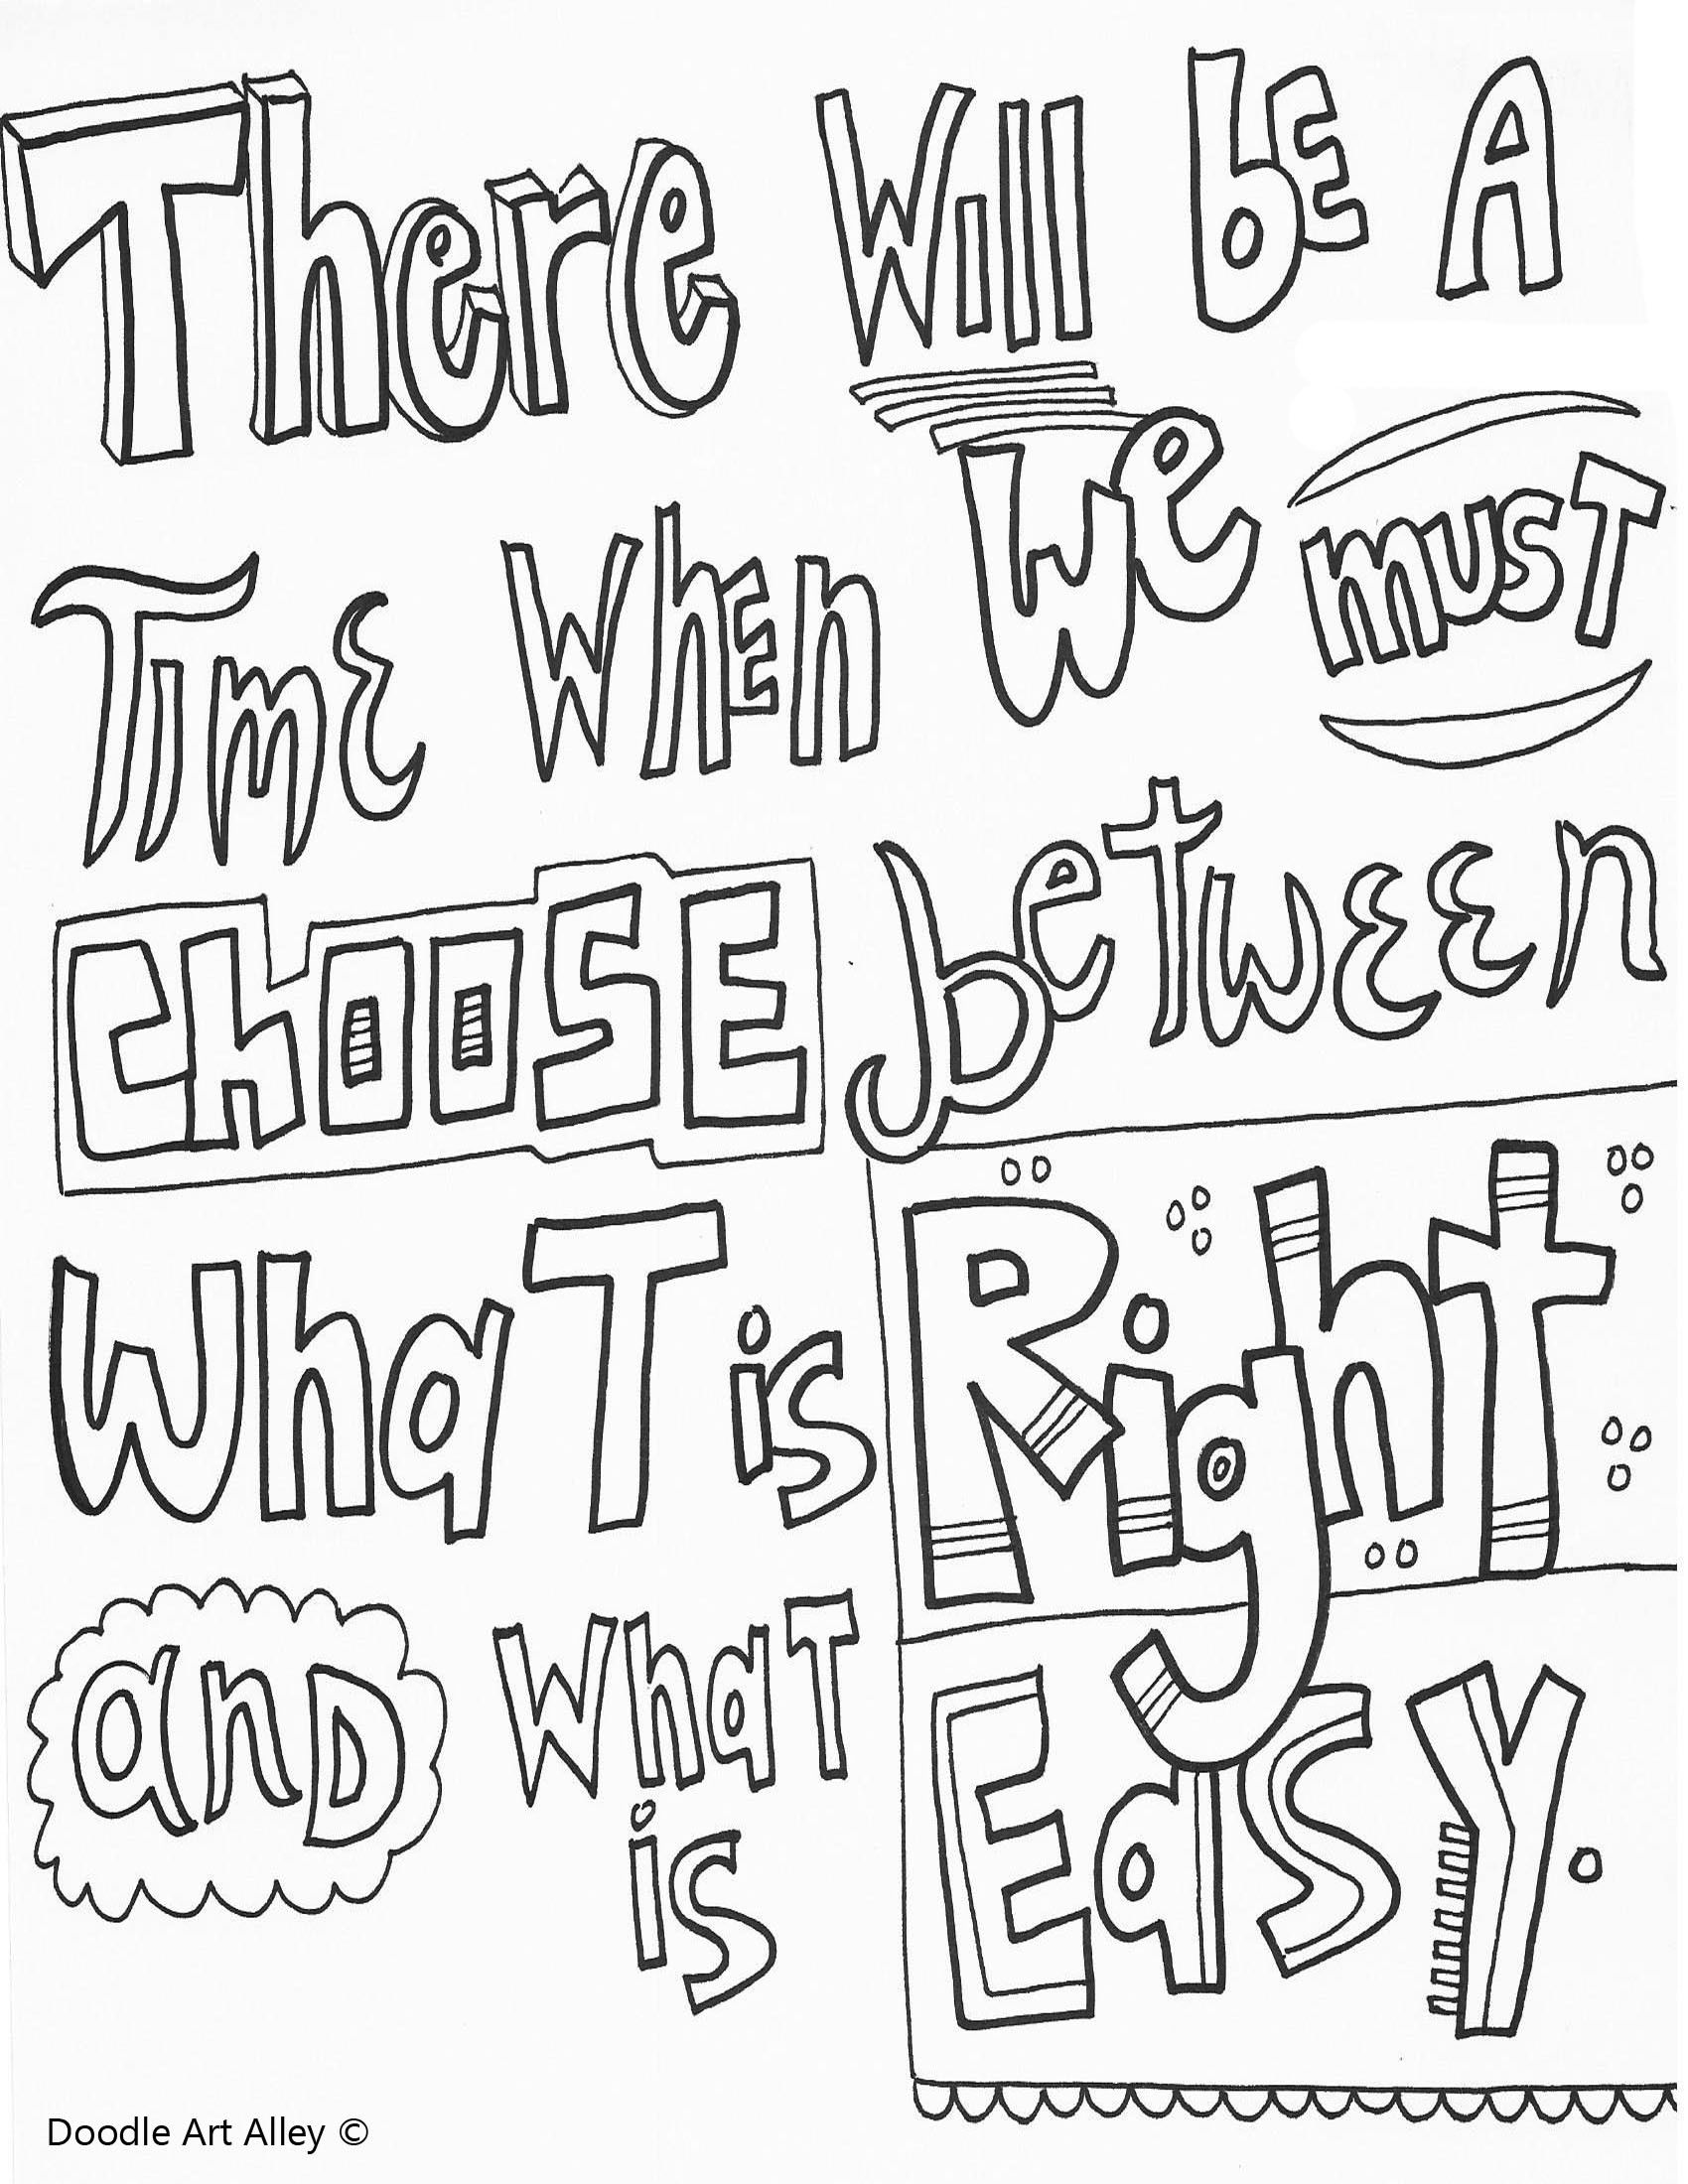 Jk Rowling Via Harry Potter Quote Coloring Pages Harry Potter Coloring Pages Coloring Pages